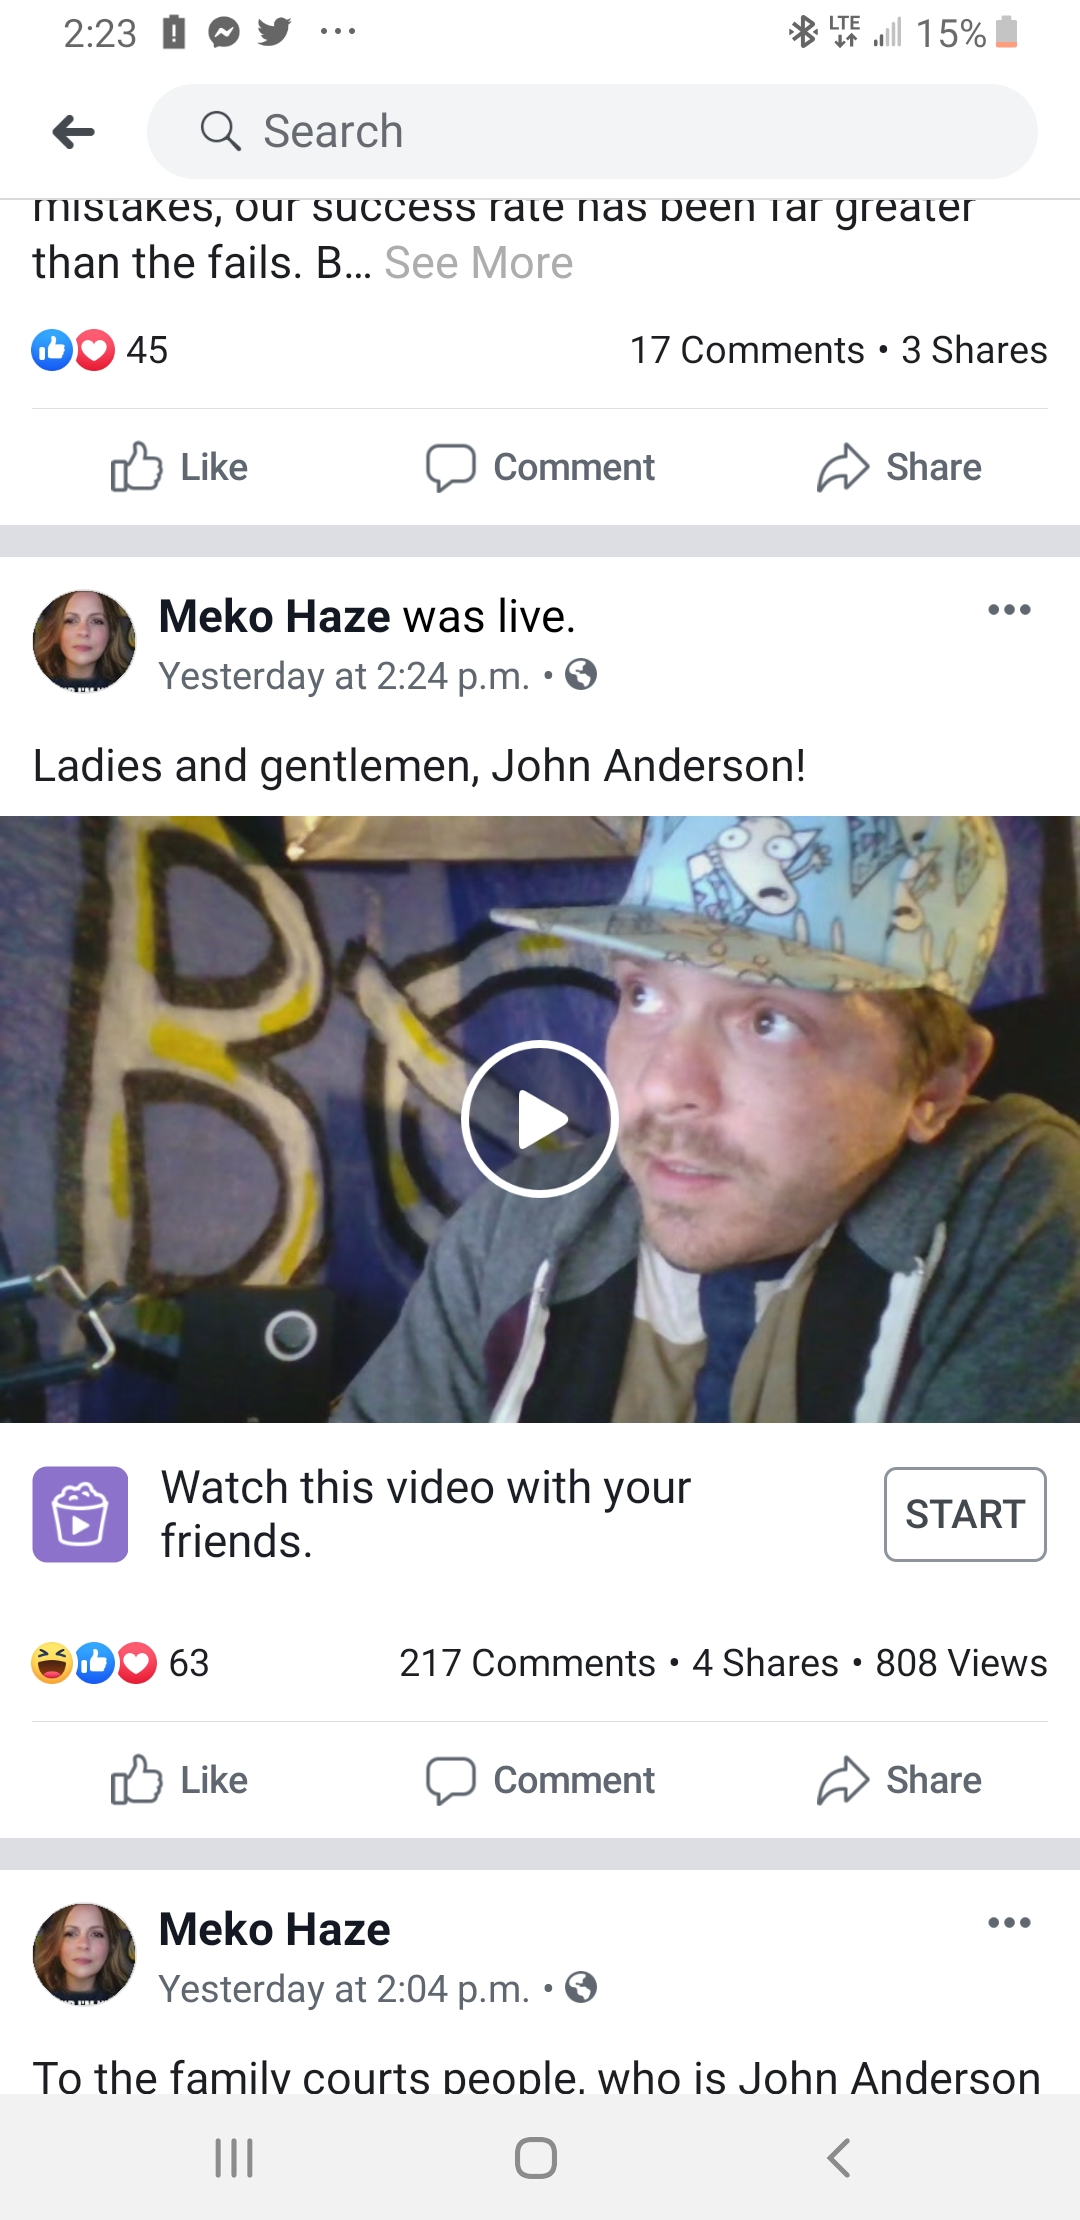 Meko Haze Openly Aids Pedophiles By Attacking Those Who Exposed Them